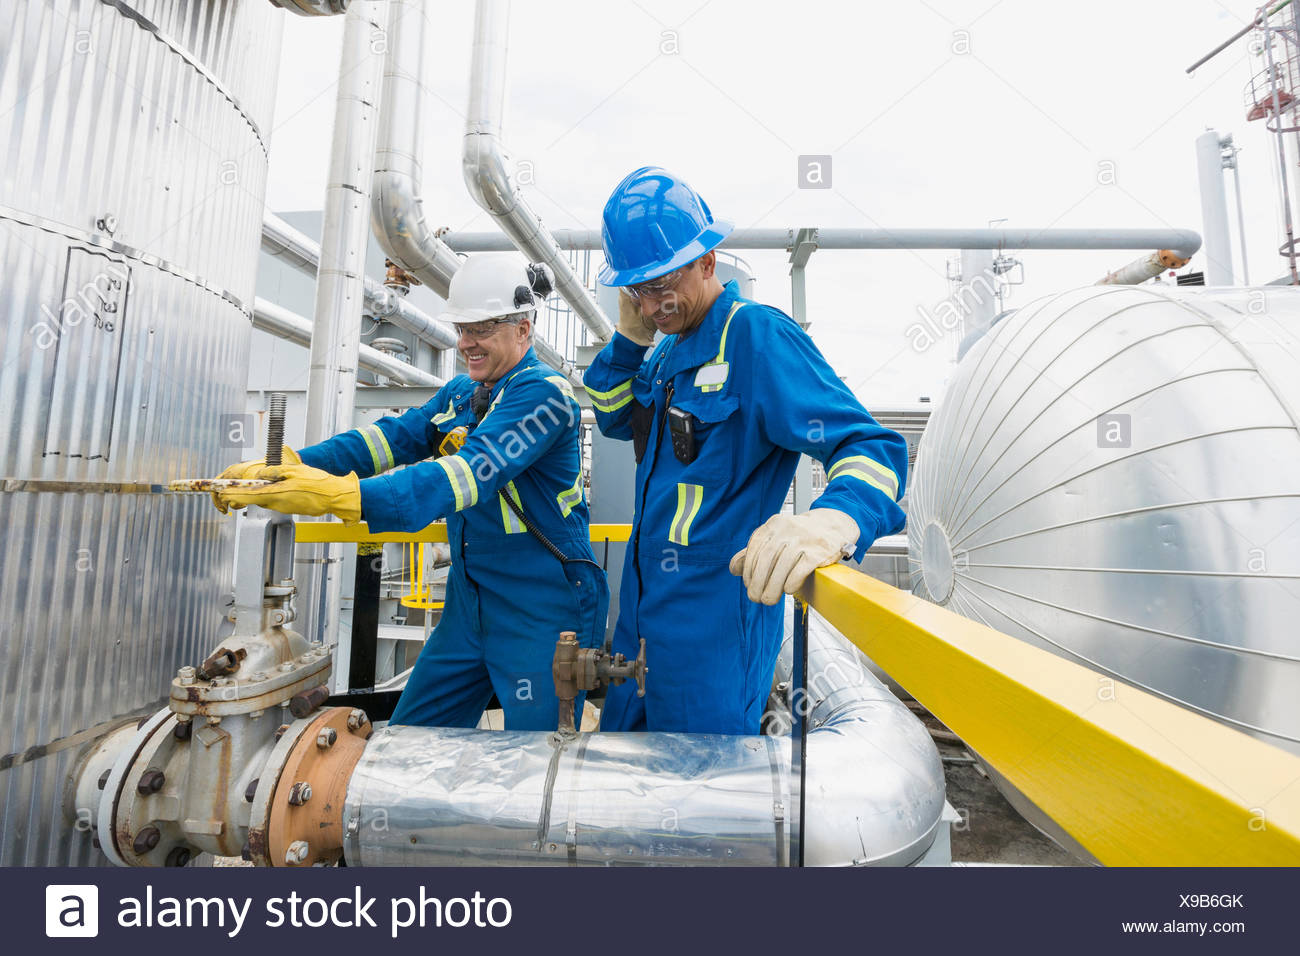 Male workers checking equipment at gas plant - Stock Image